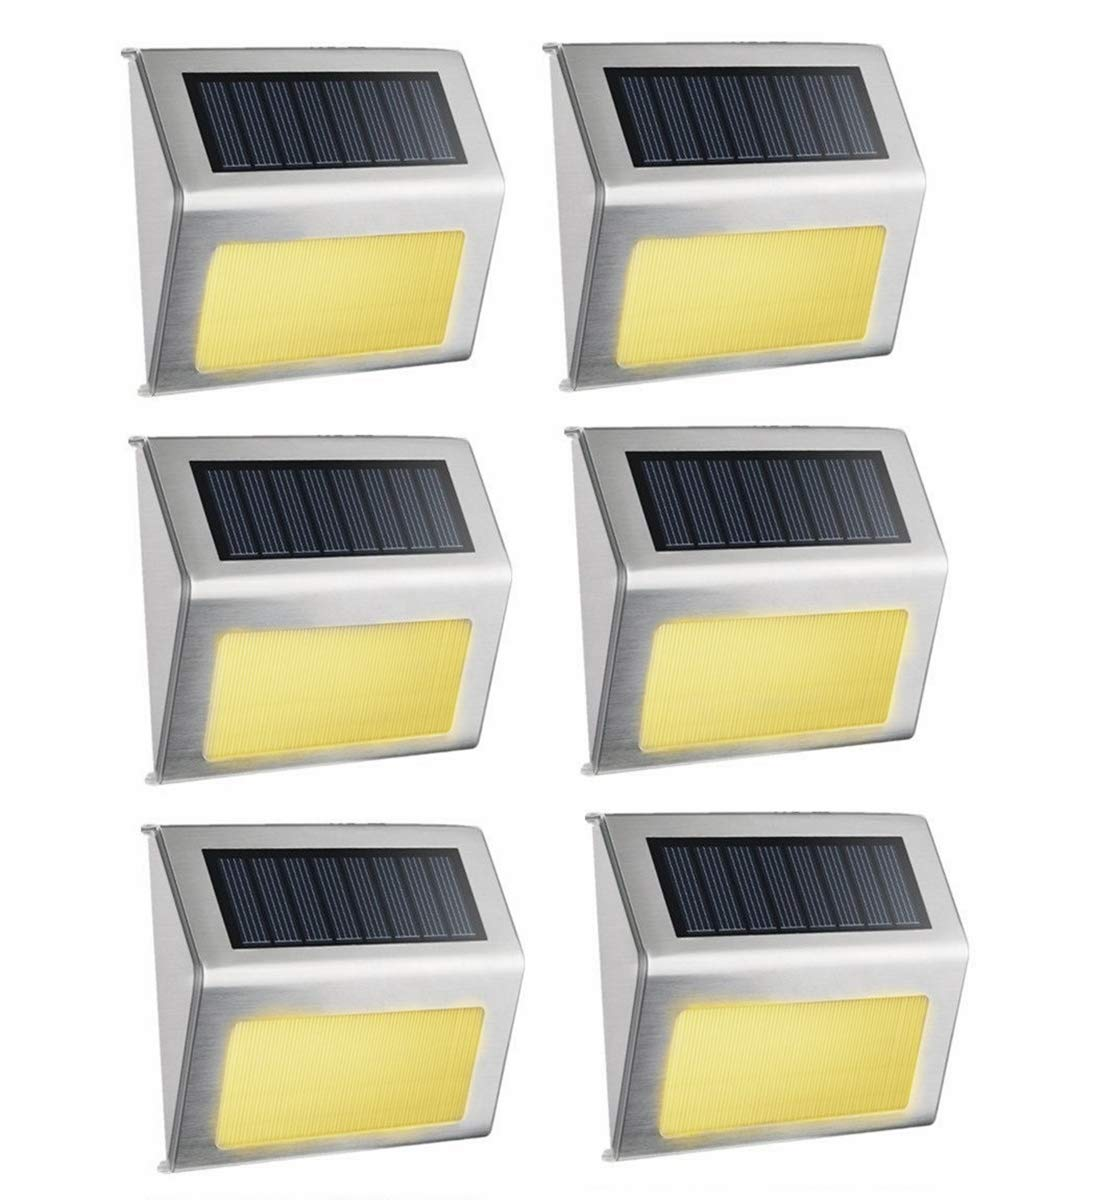 Warm White Solar Light, SimPra Outdoor Stainless Steel LED Solar Step Light; Illuminates Stairs, Deck, Patio, Etc (Warm White 6 Pack) by SimPra